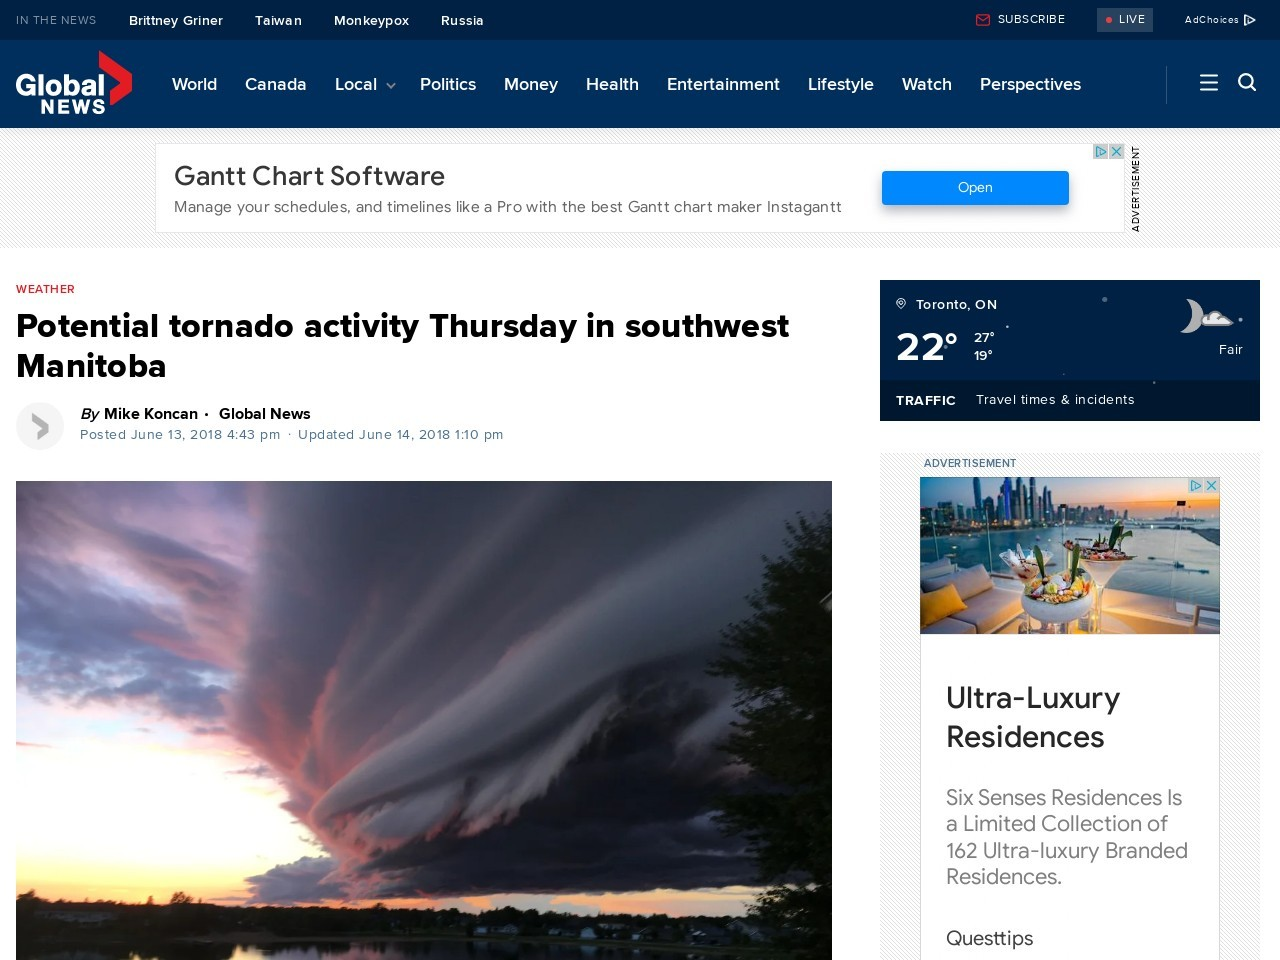 Potential for severe weather Thursday in southwest Manitoba